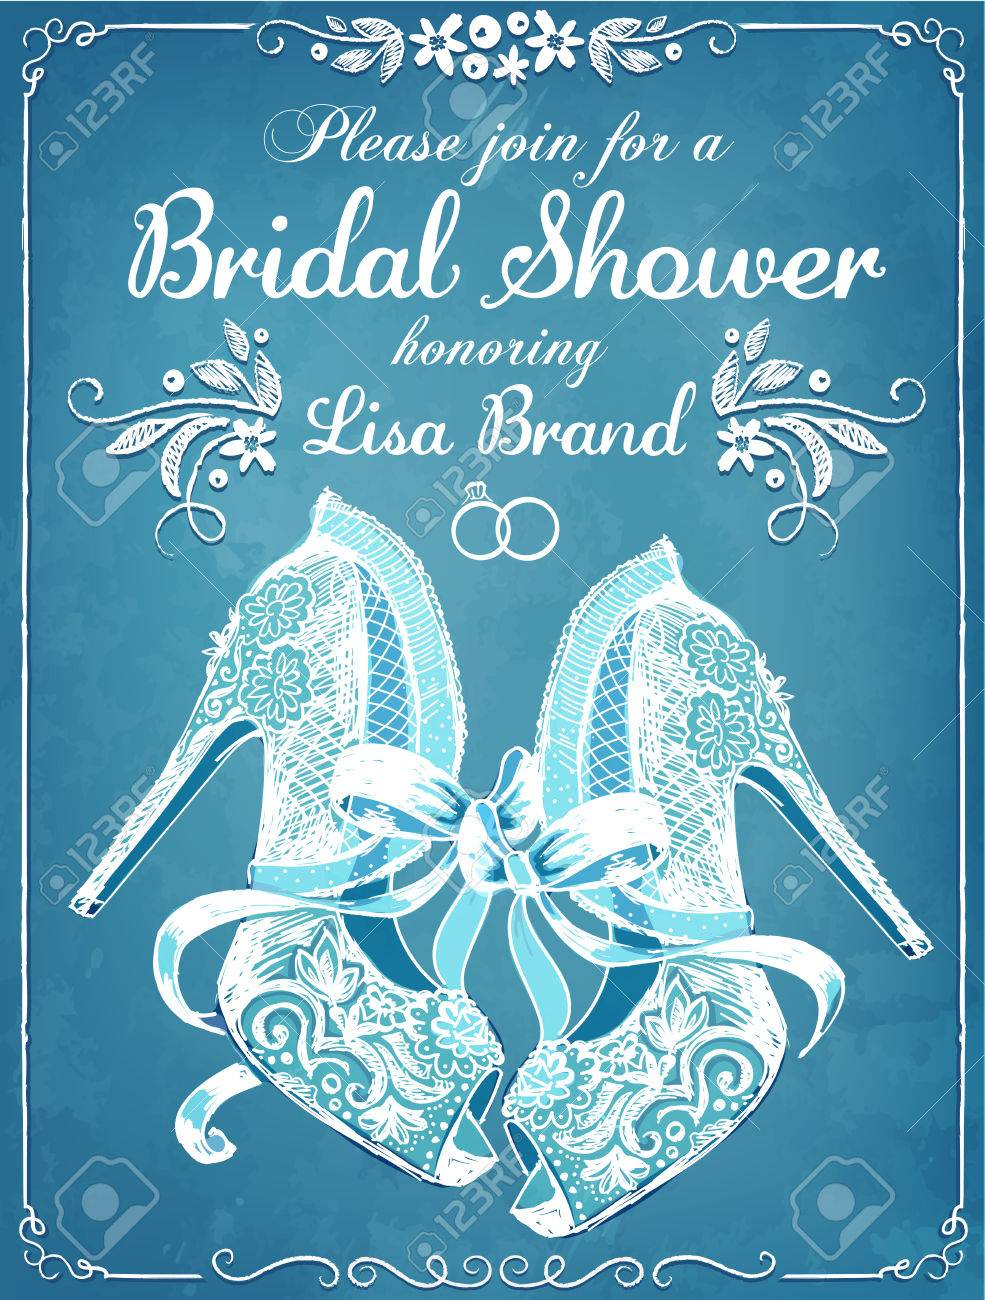 bridal shower invitation card with beautiful lace brides shoes floral frame wedding invitation stock